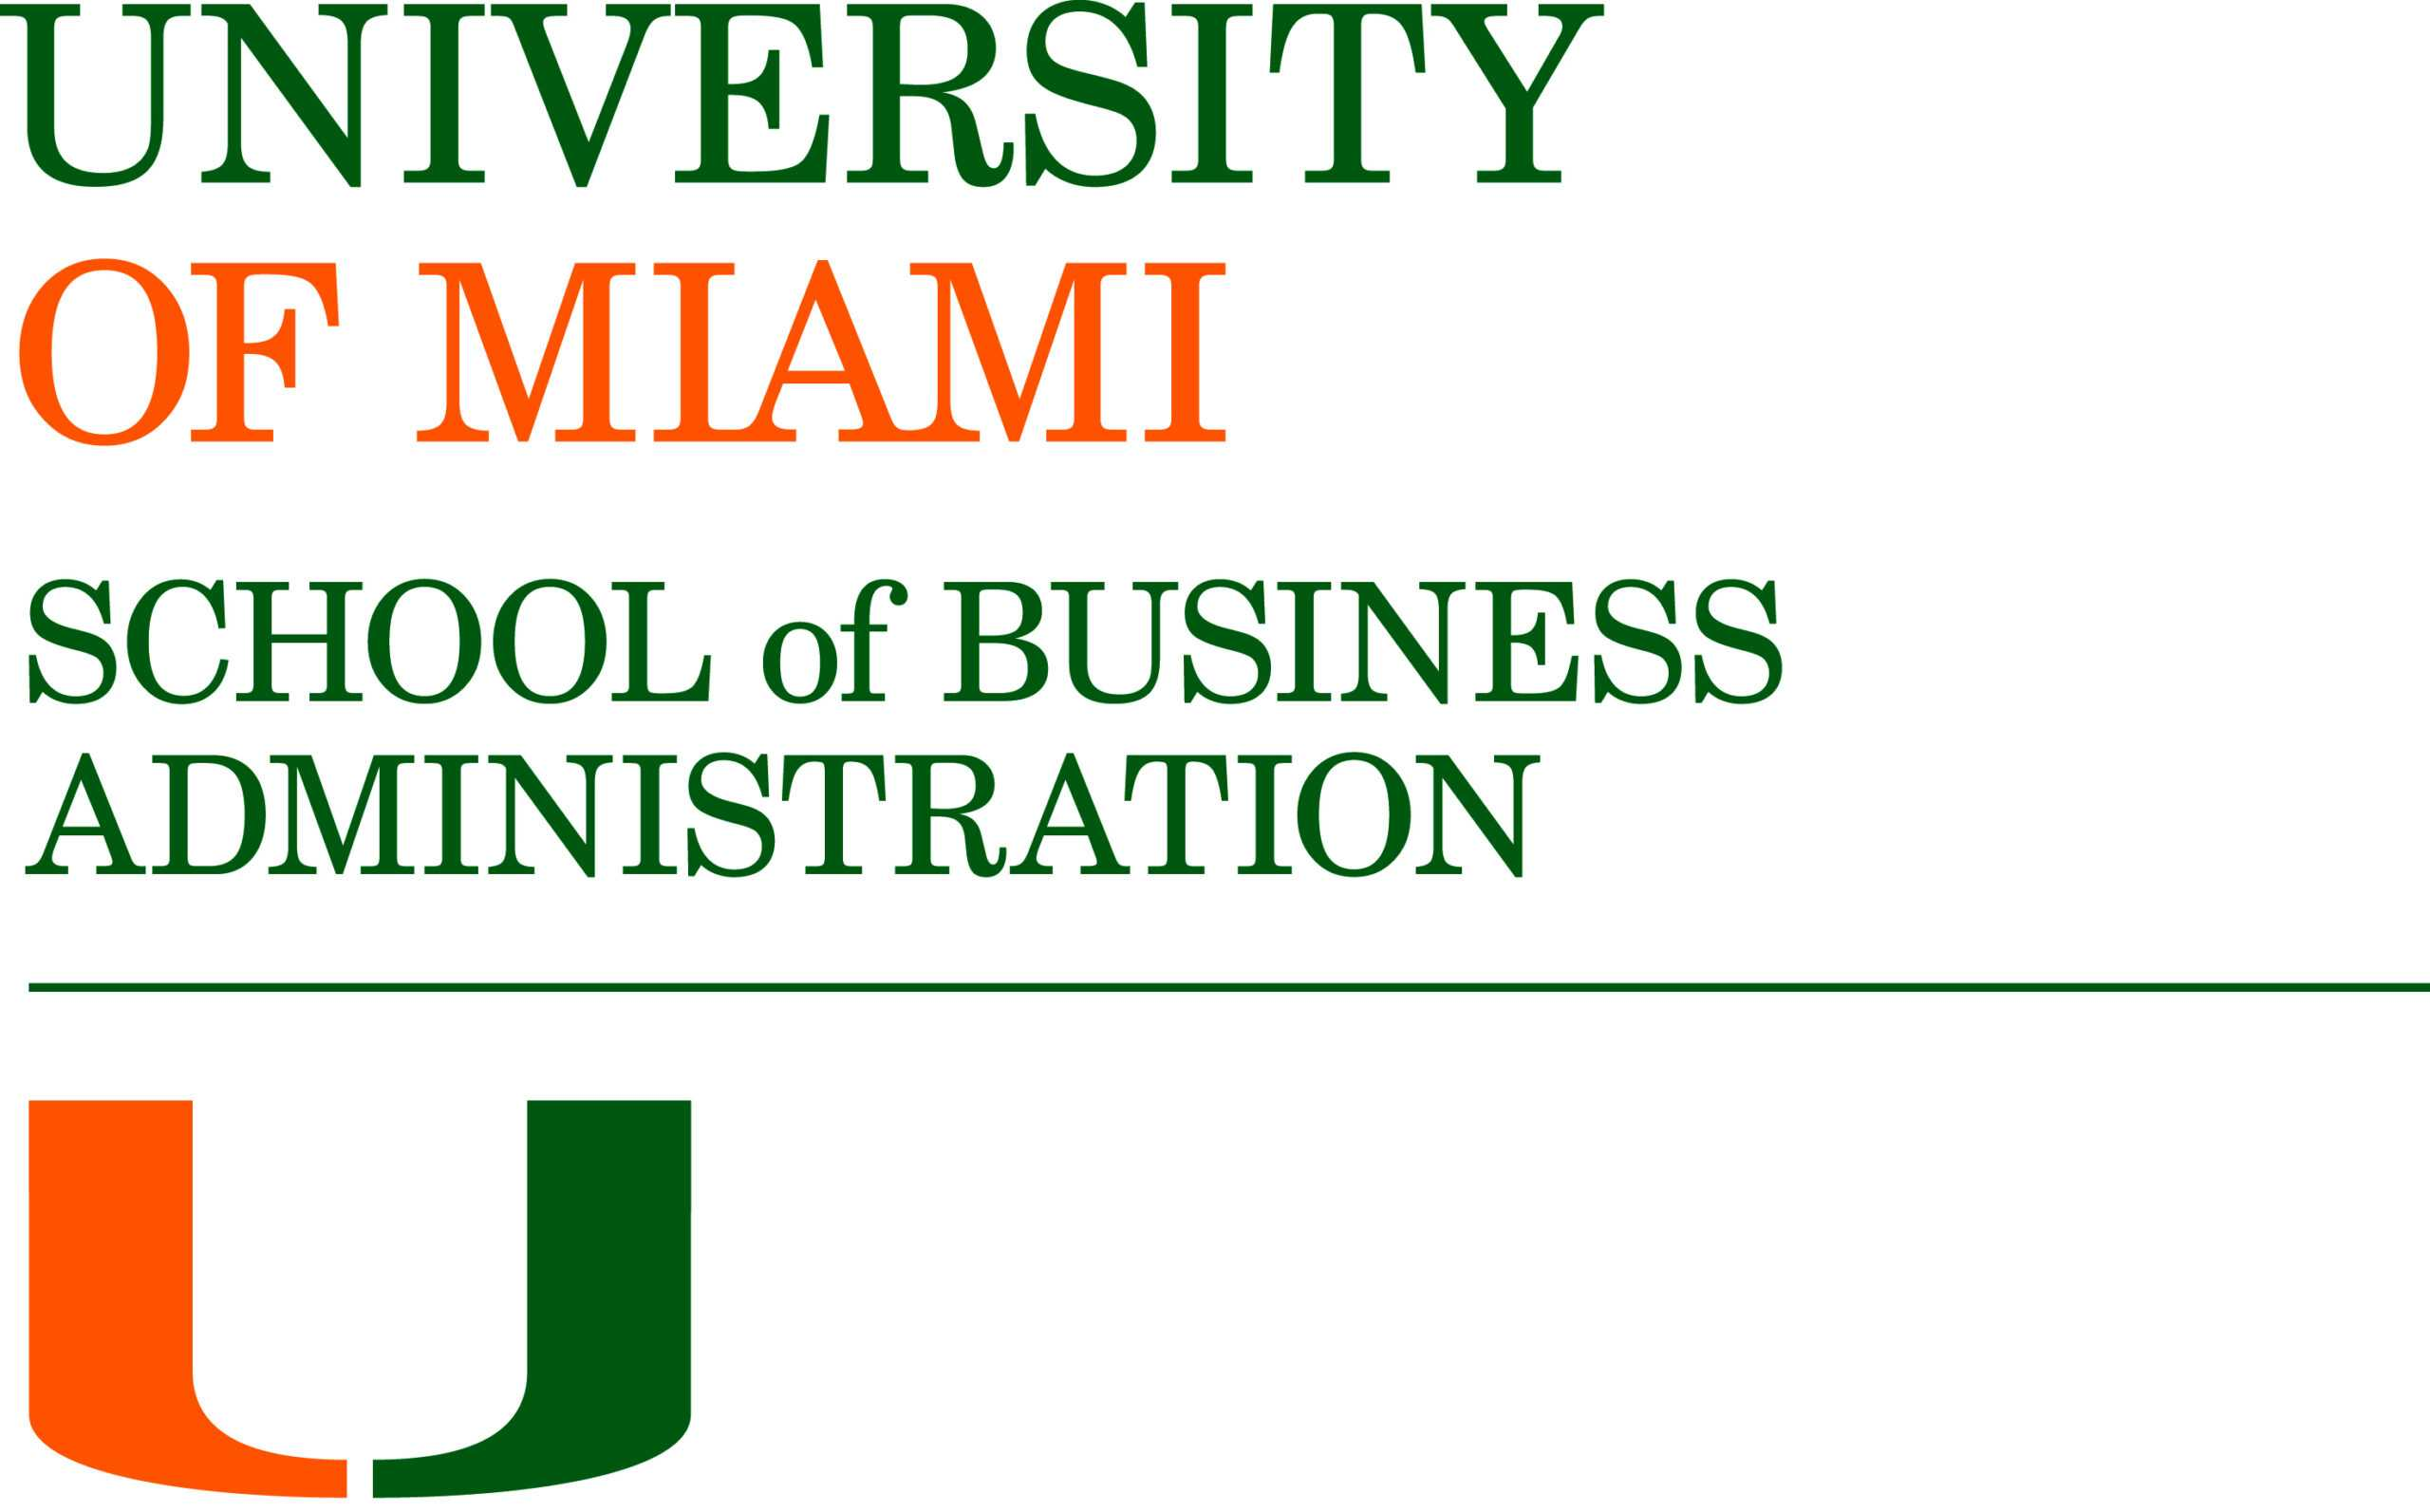 Logos And Templates : University Of Miami School Of Business inside University Of Miami Powerpoint Template